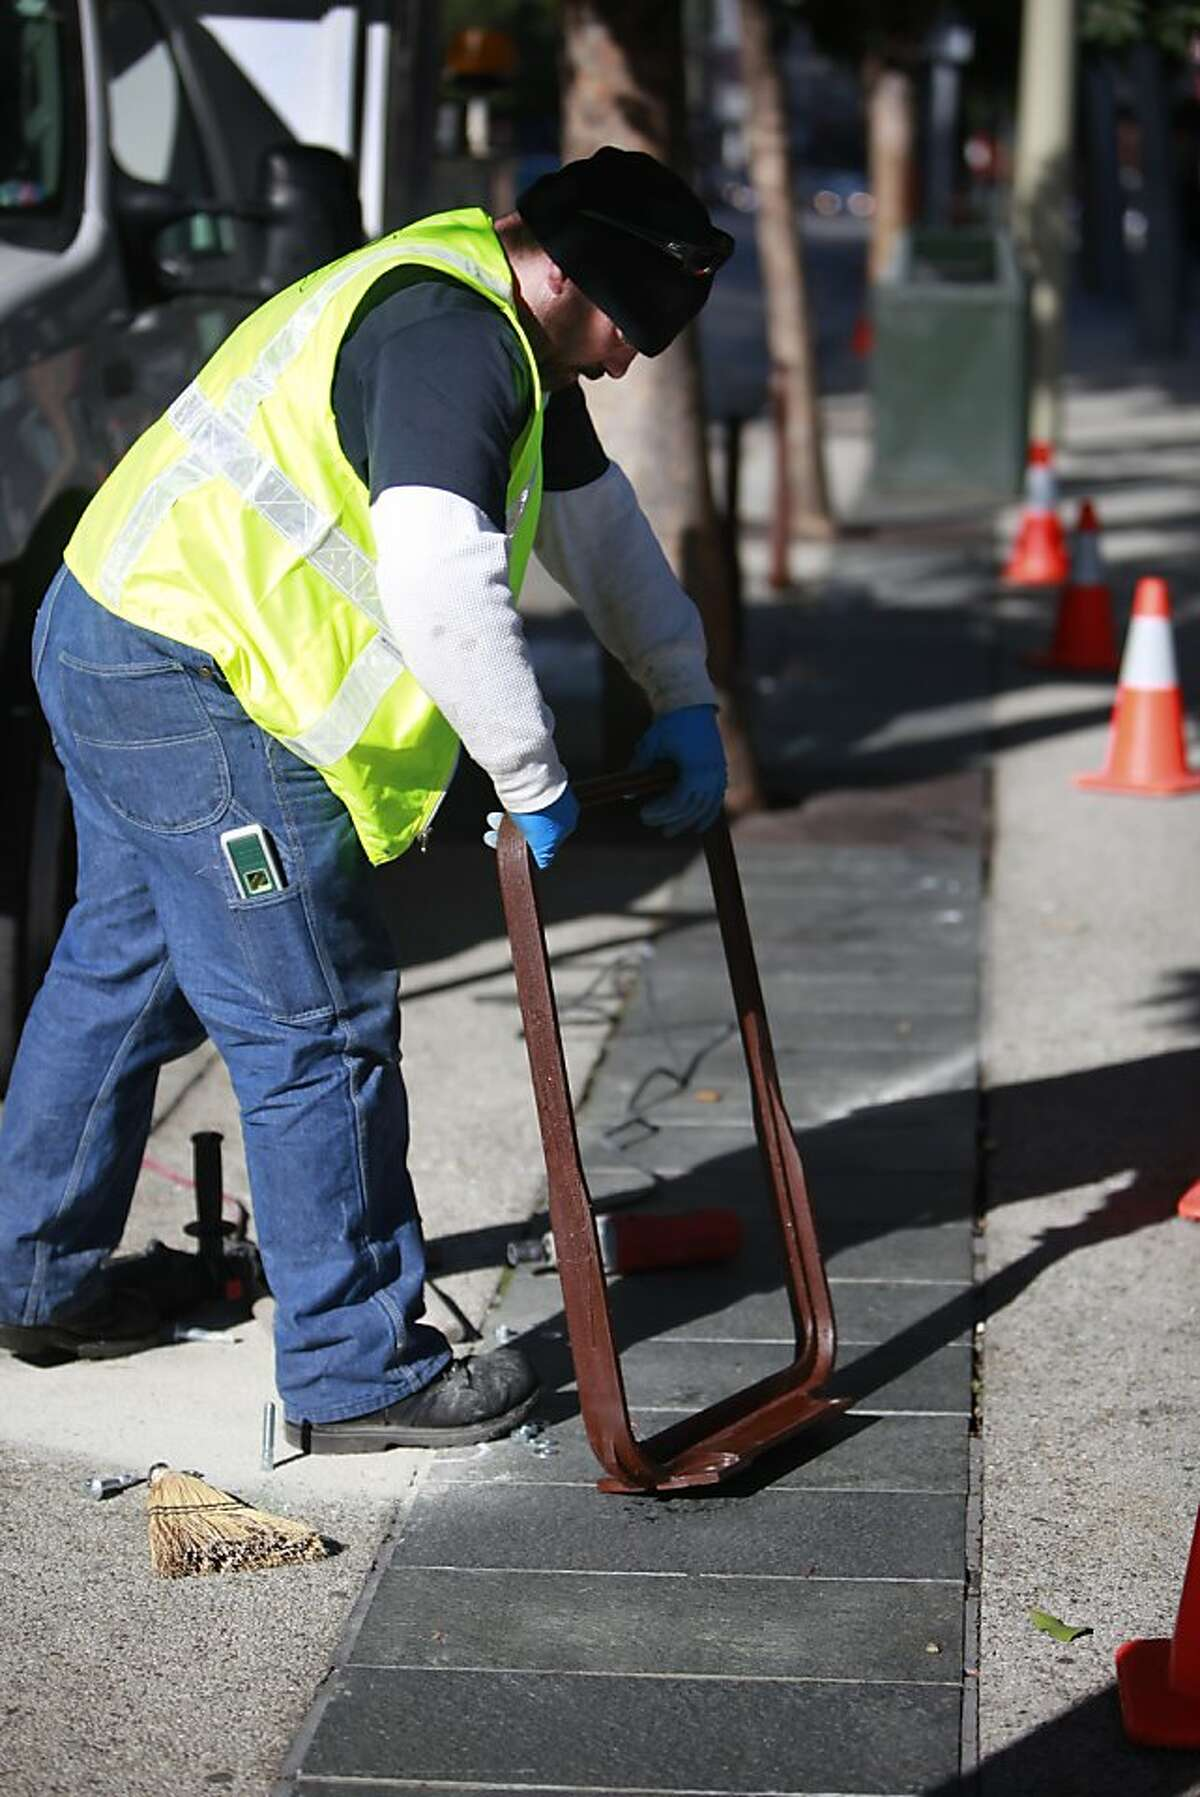 Mike Turner, sign installer SFMTA, installs new bike racks on 4th Street near Howard Street on Thursday, December 13, 2012 in San Francisco, Calif.